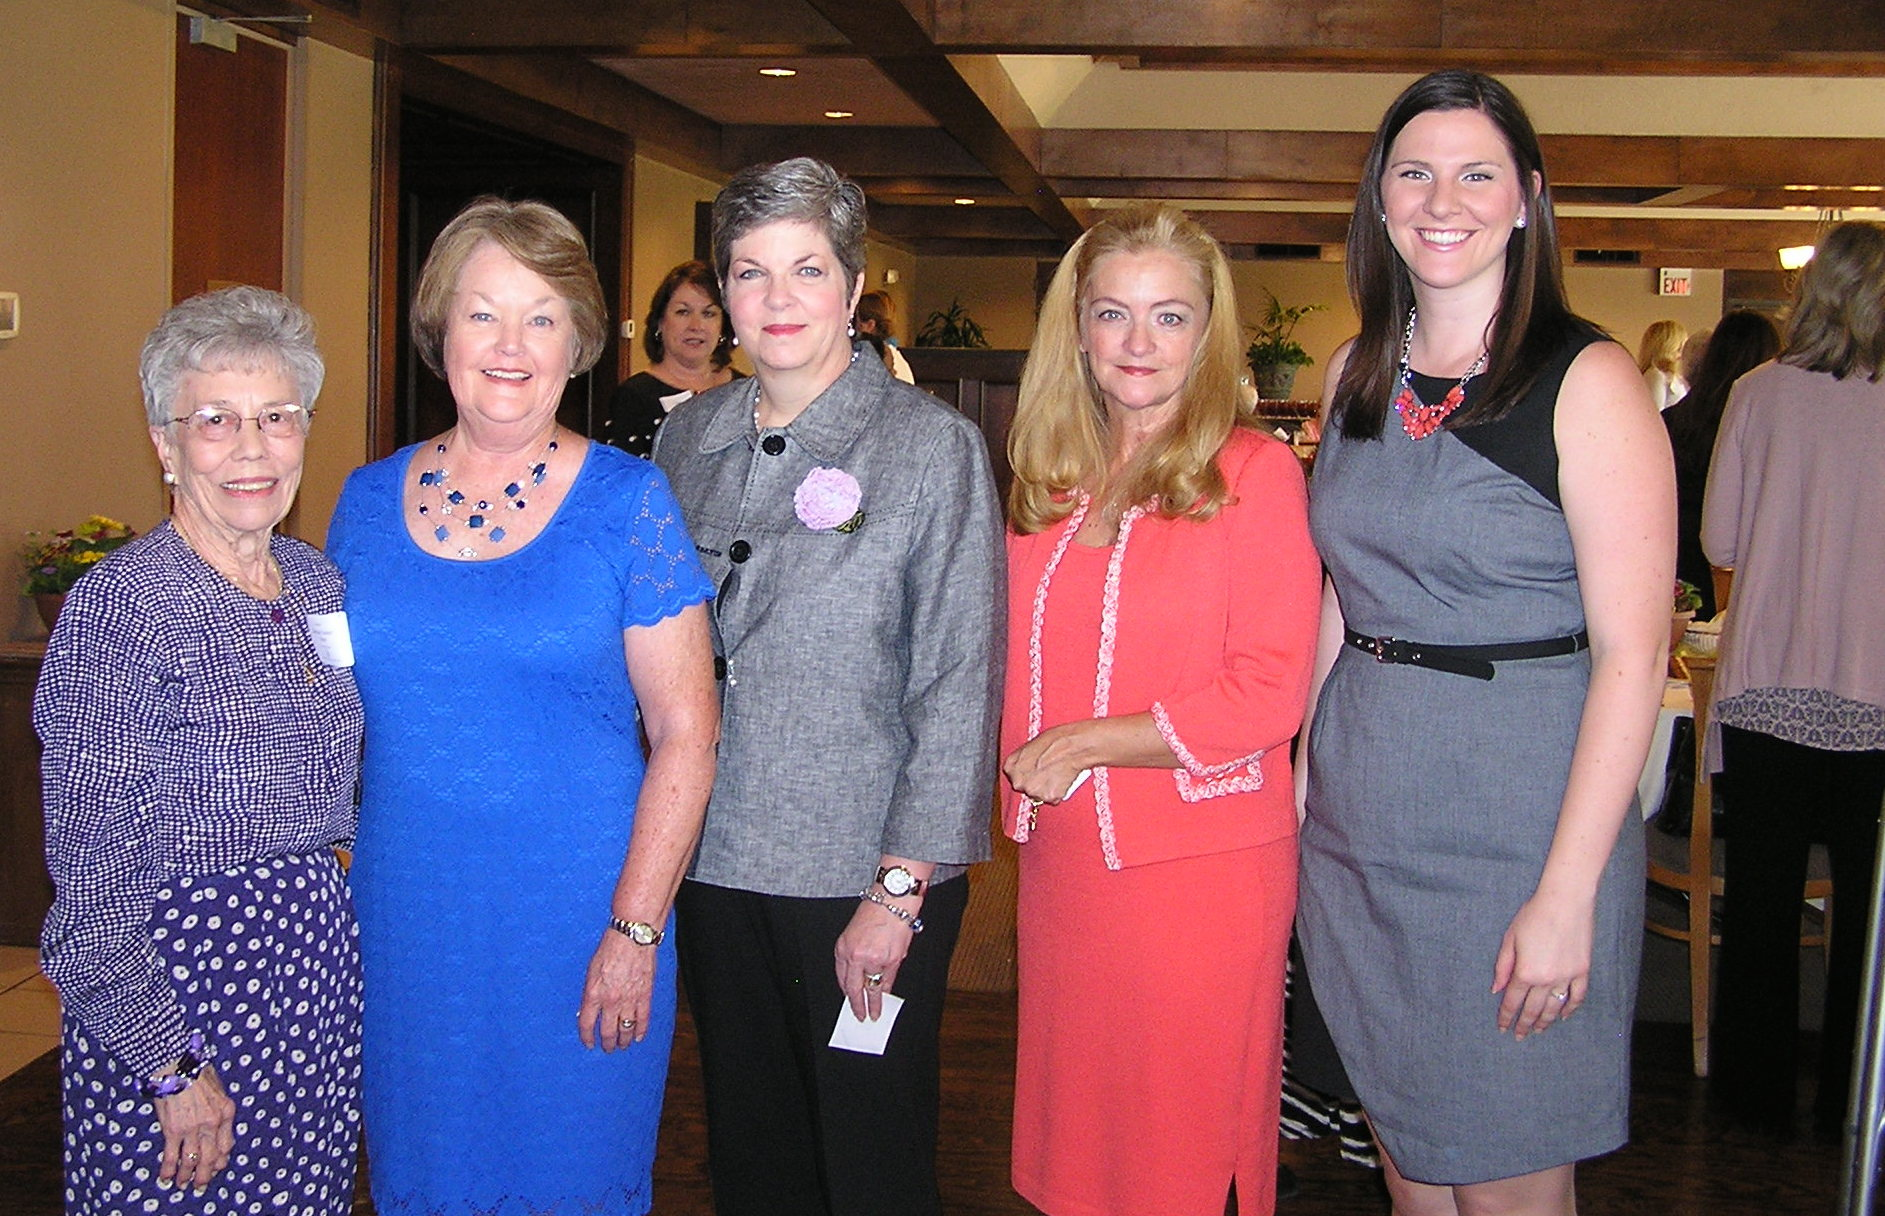 Barbara Cromer Ritter, Carol Bitting Carter,  Joan Corbett Burns, Michelle Norris Montalbano, and Katy Tipton.